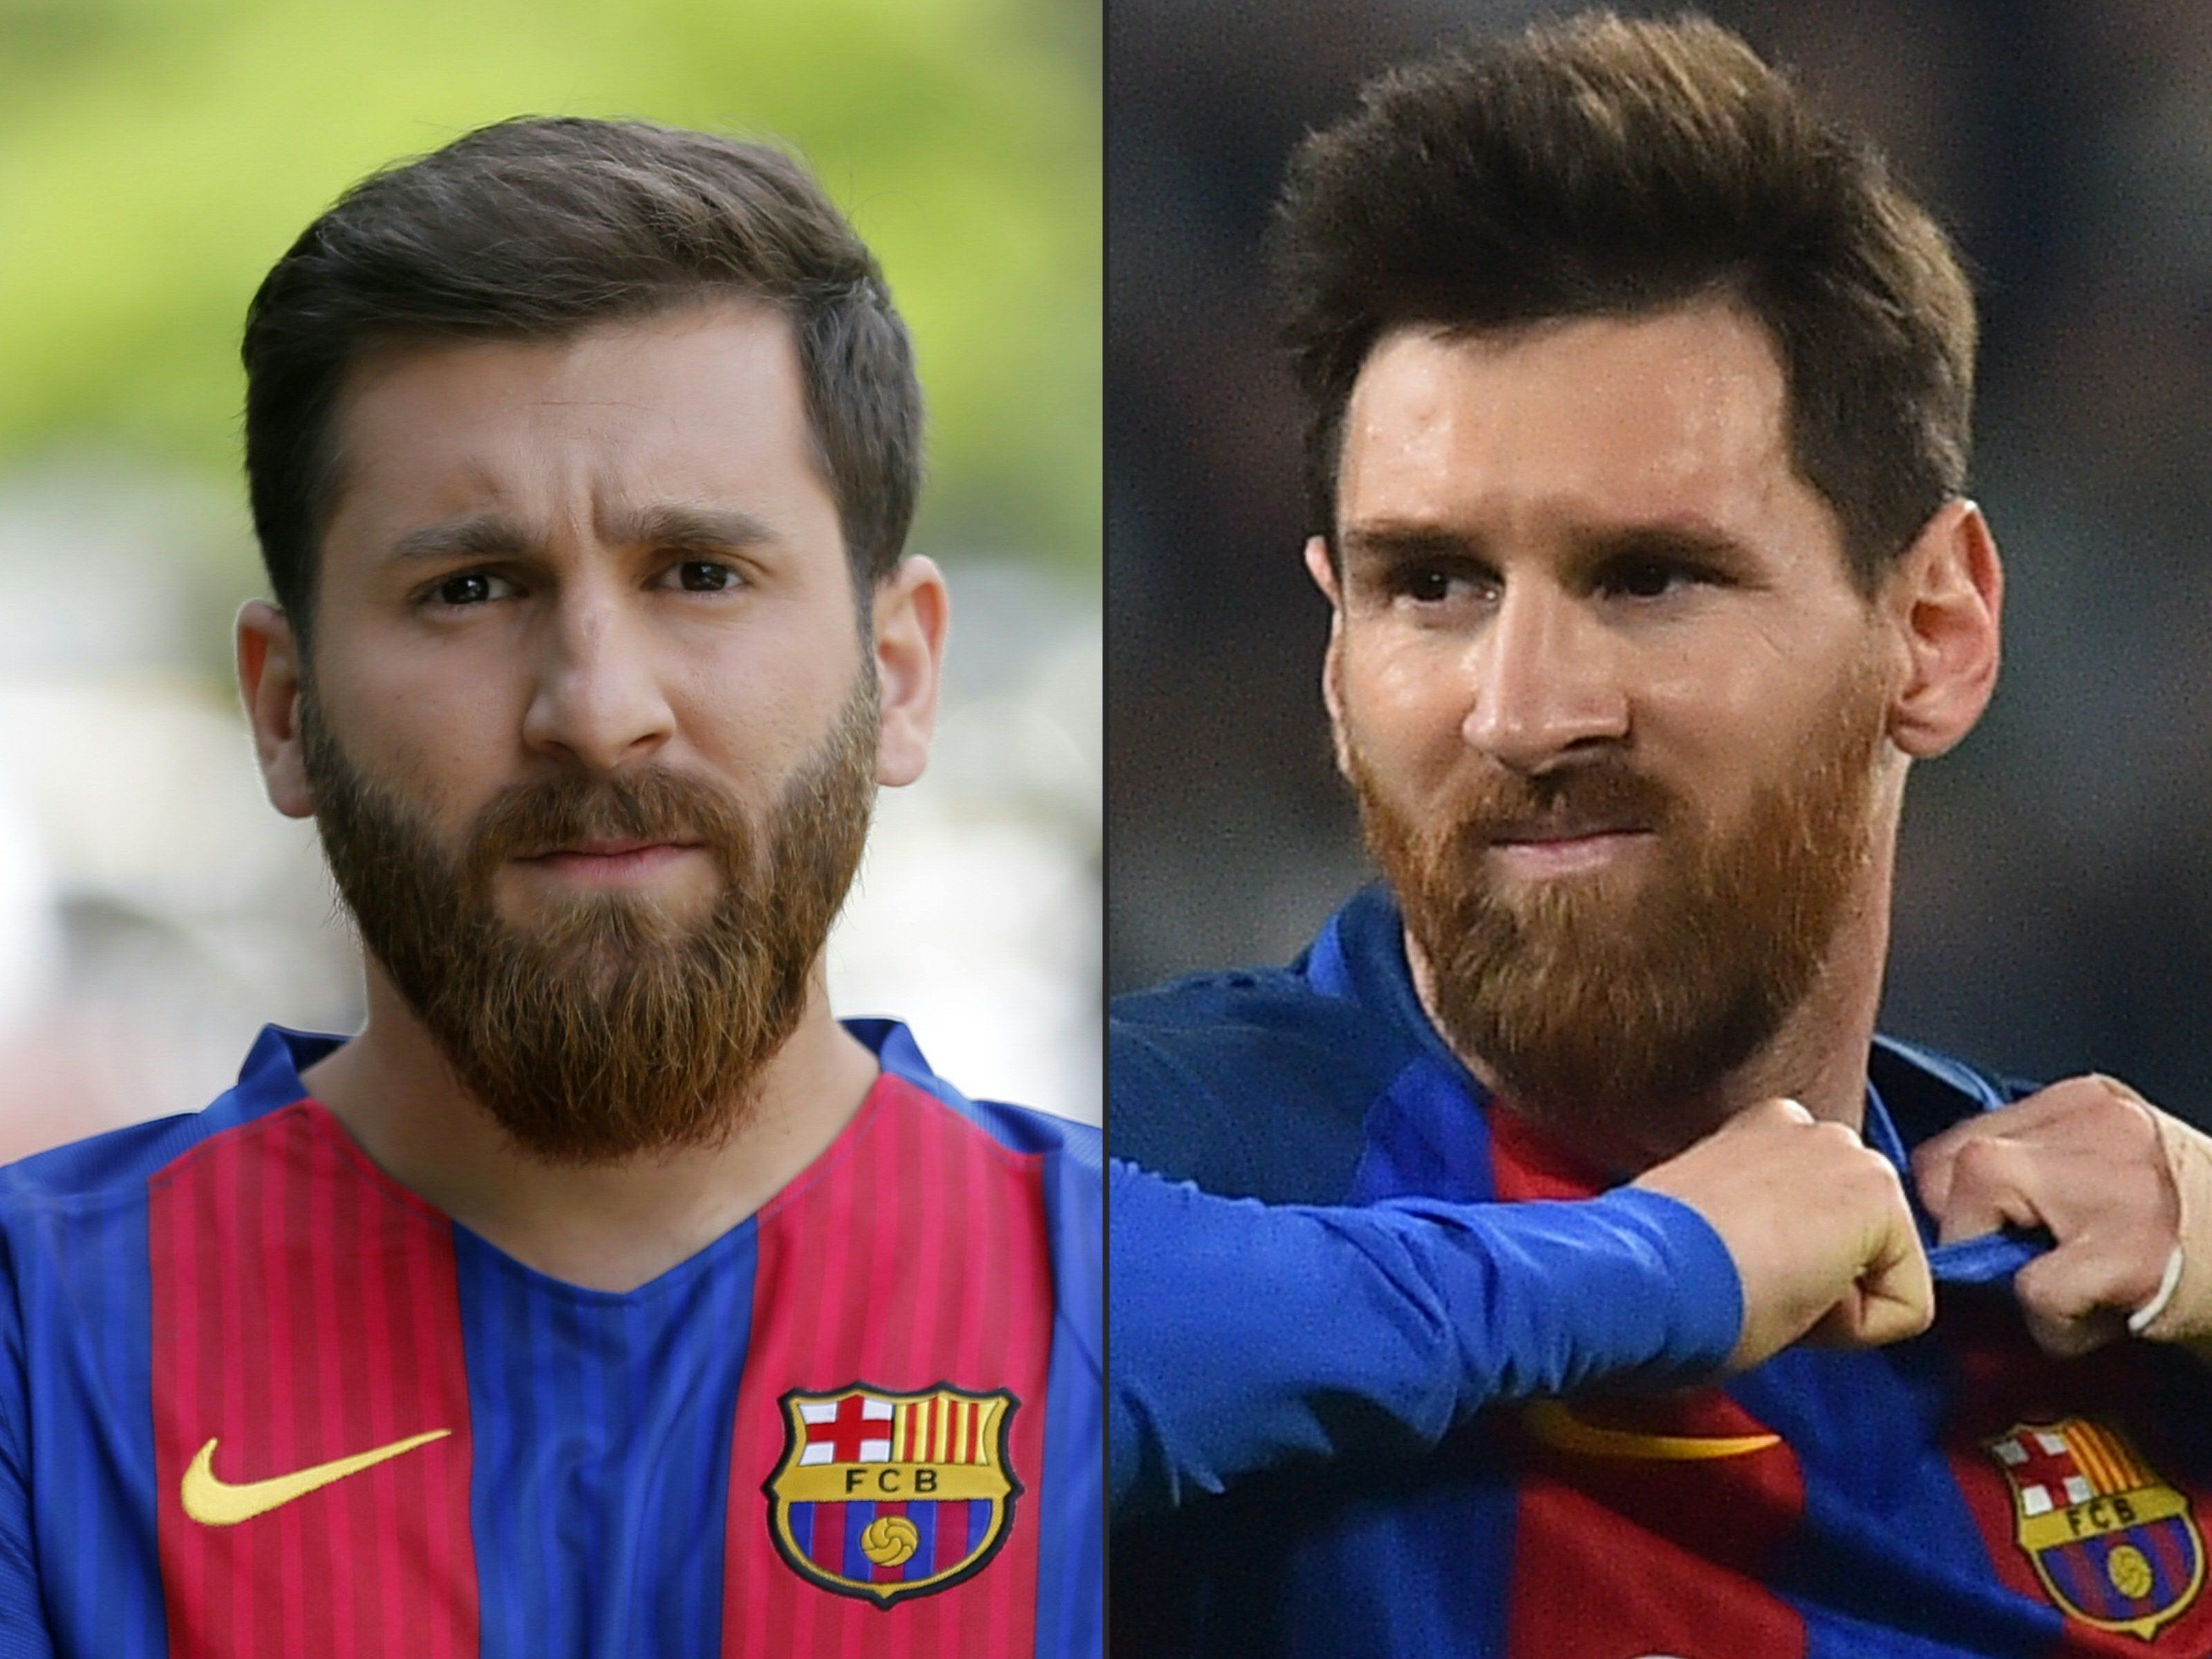 Parastesh is on the left. The real Lionel Messi is on the